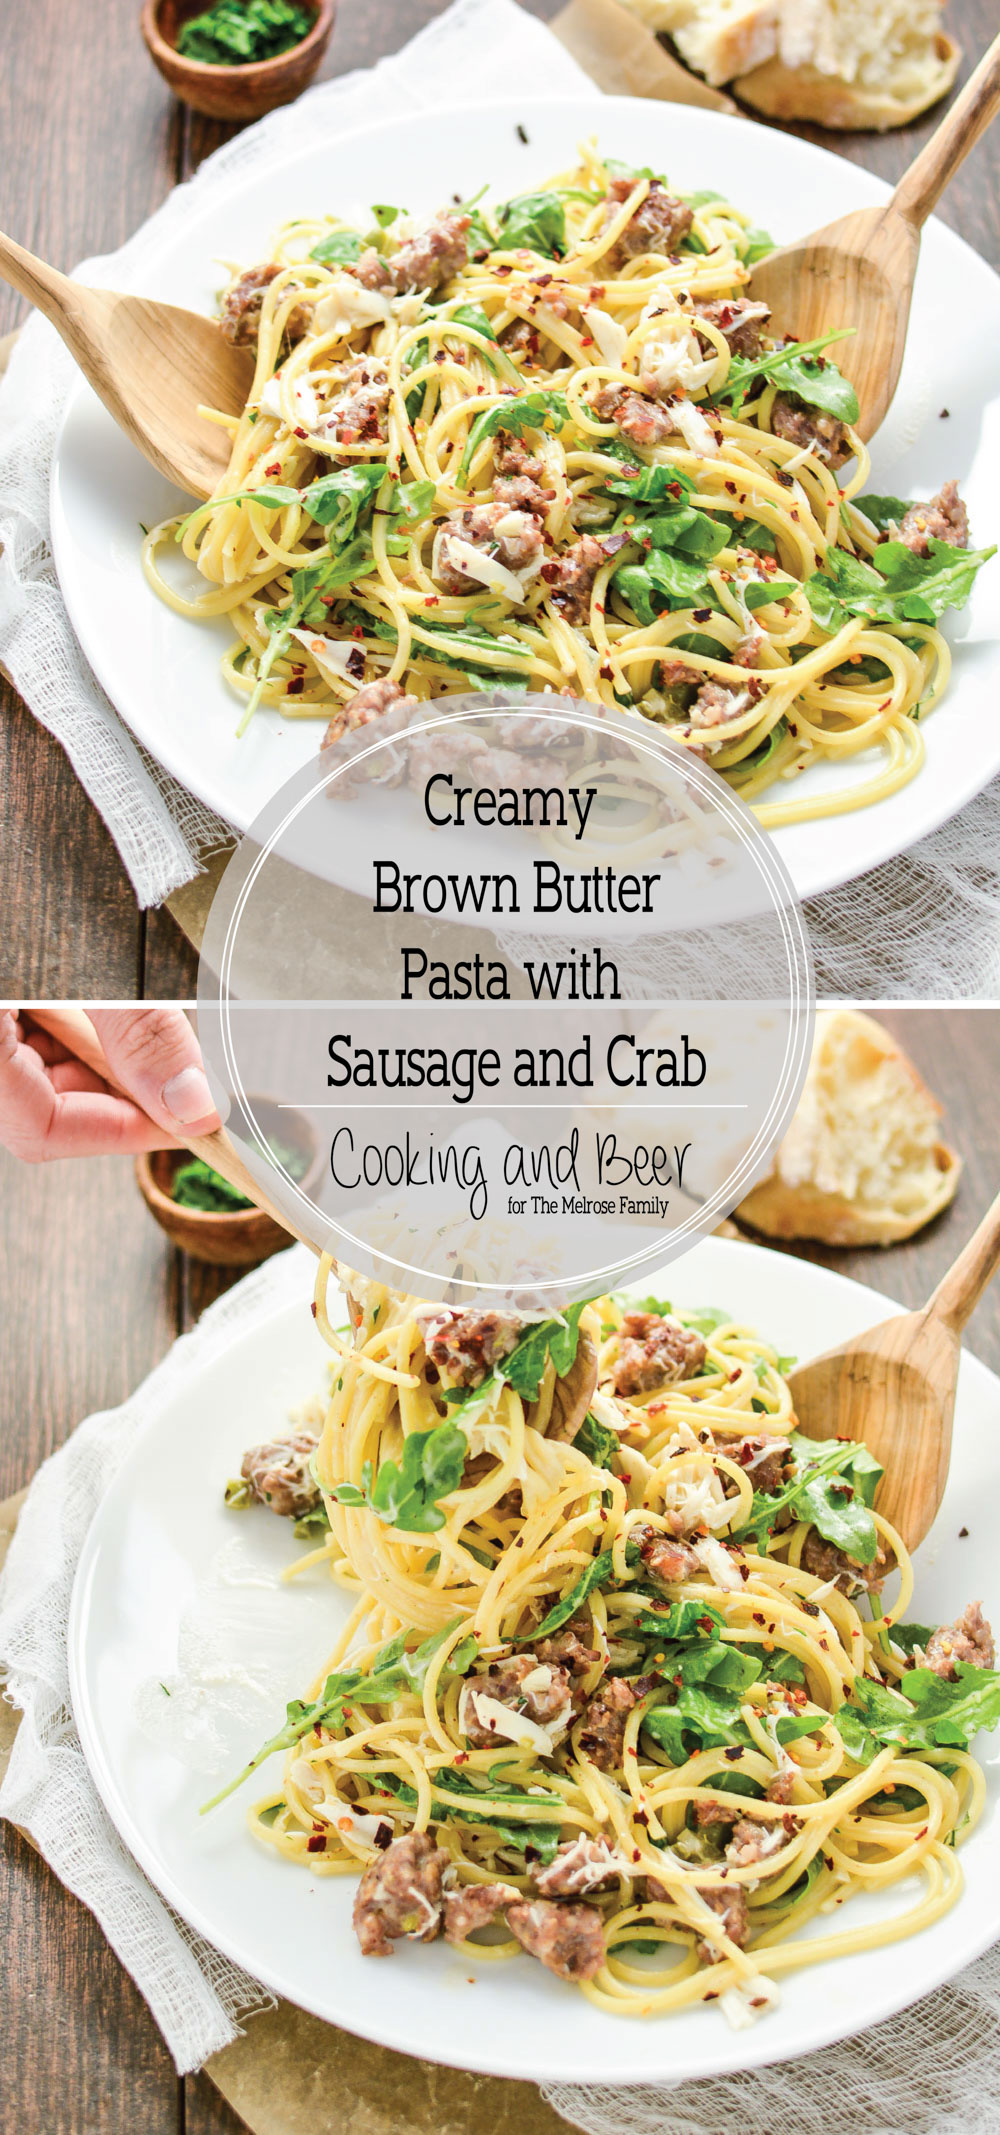 Creamy Brown Butter Pasta with Sausage and Crab is a surf and turf dish like you've never seen before!